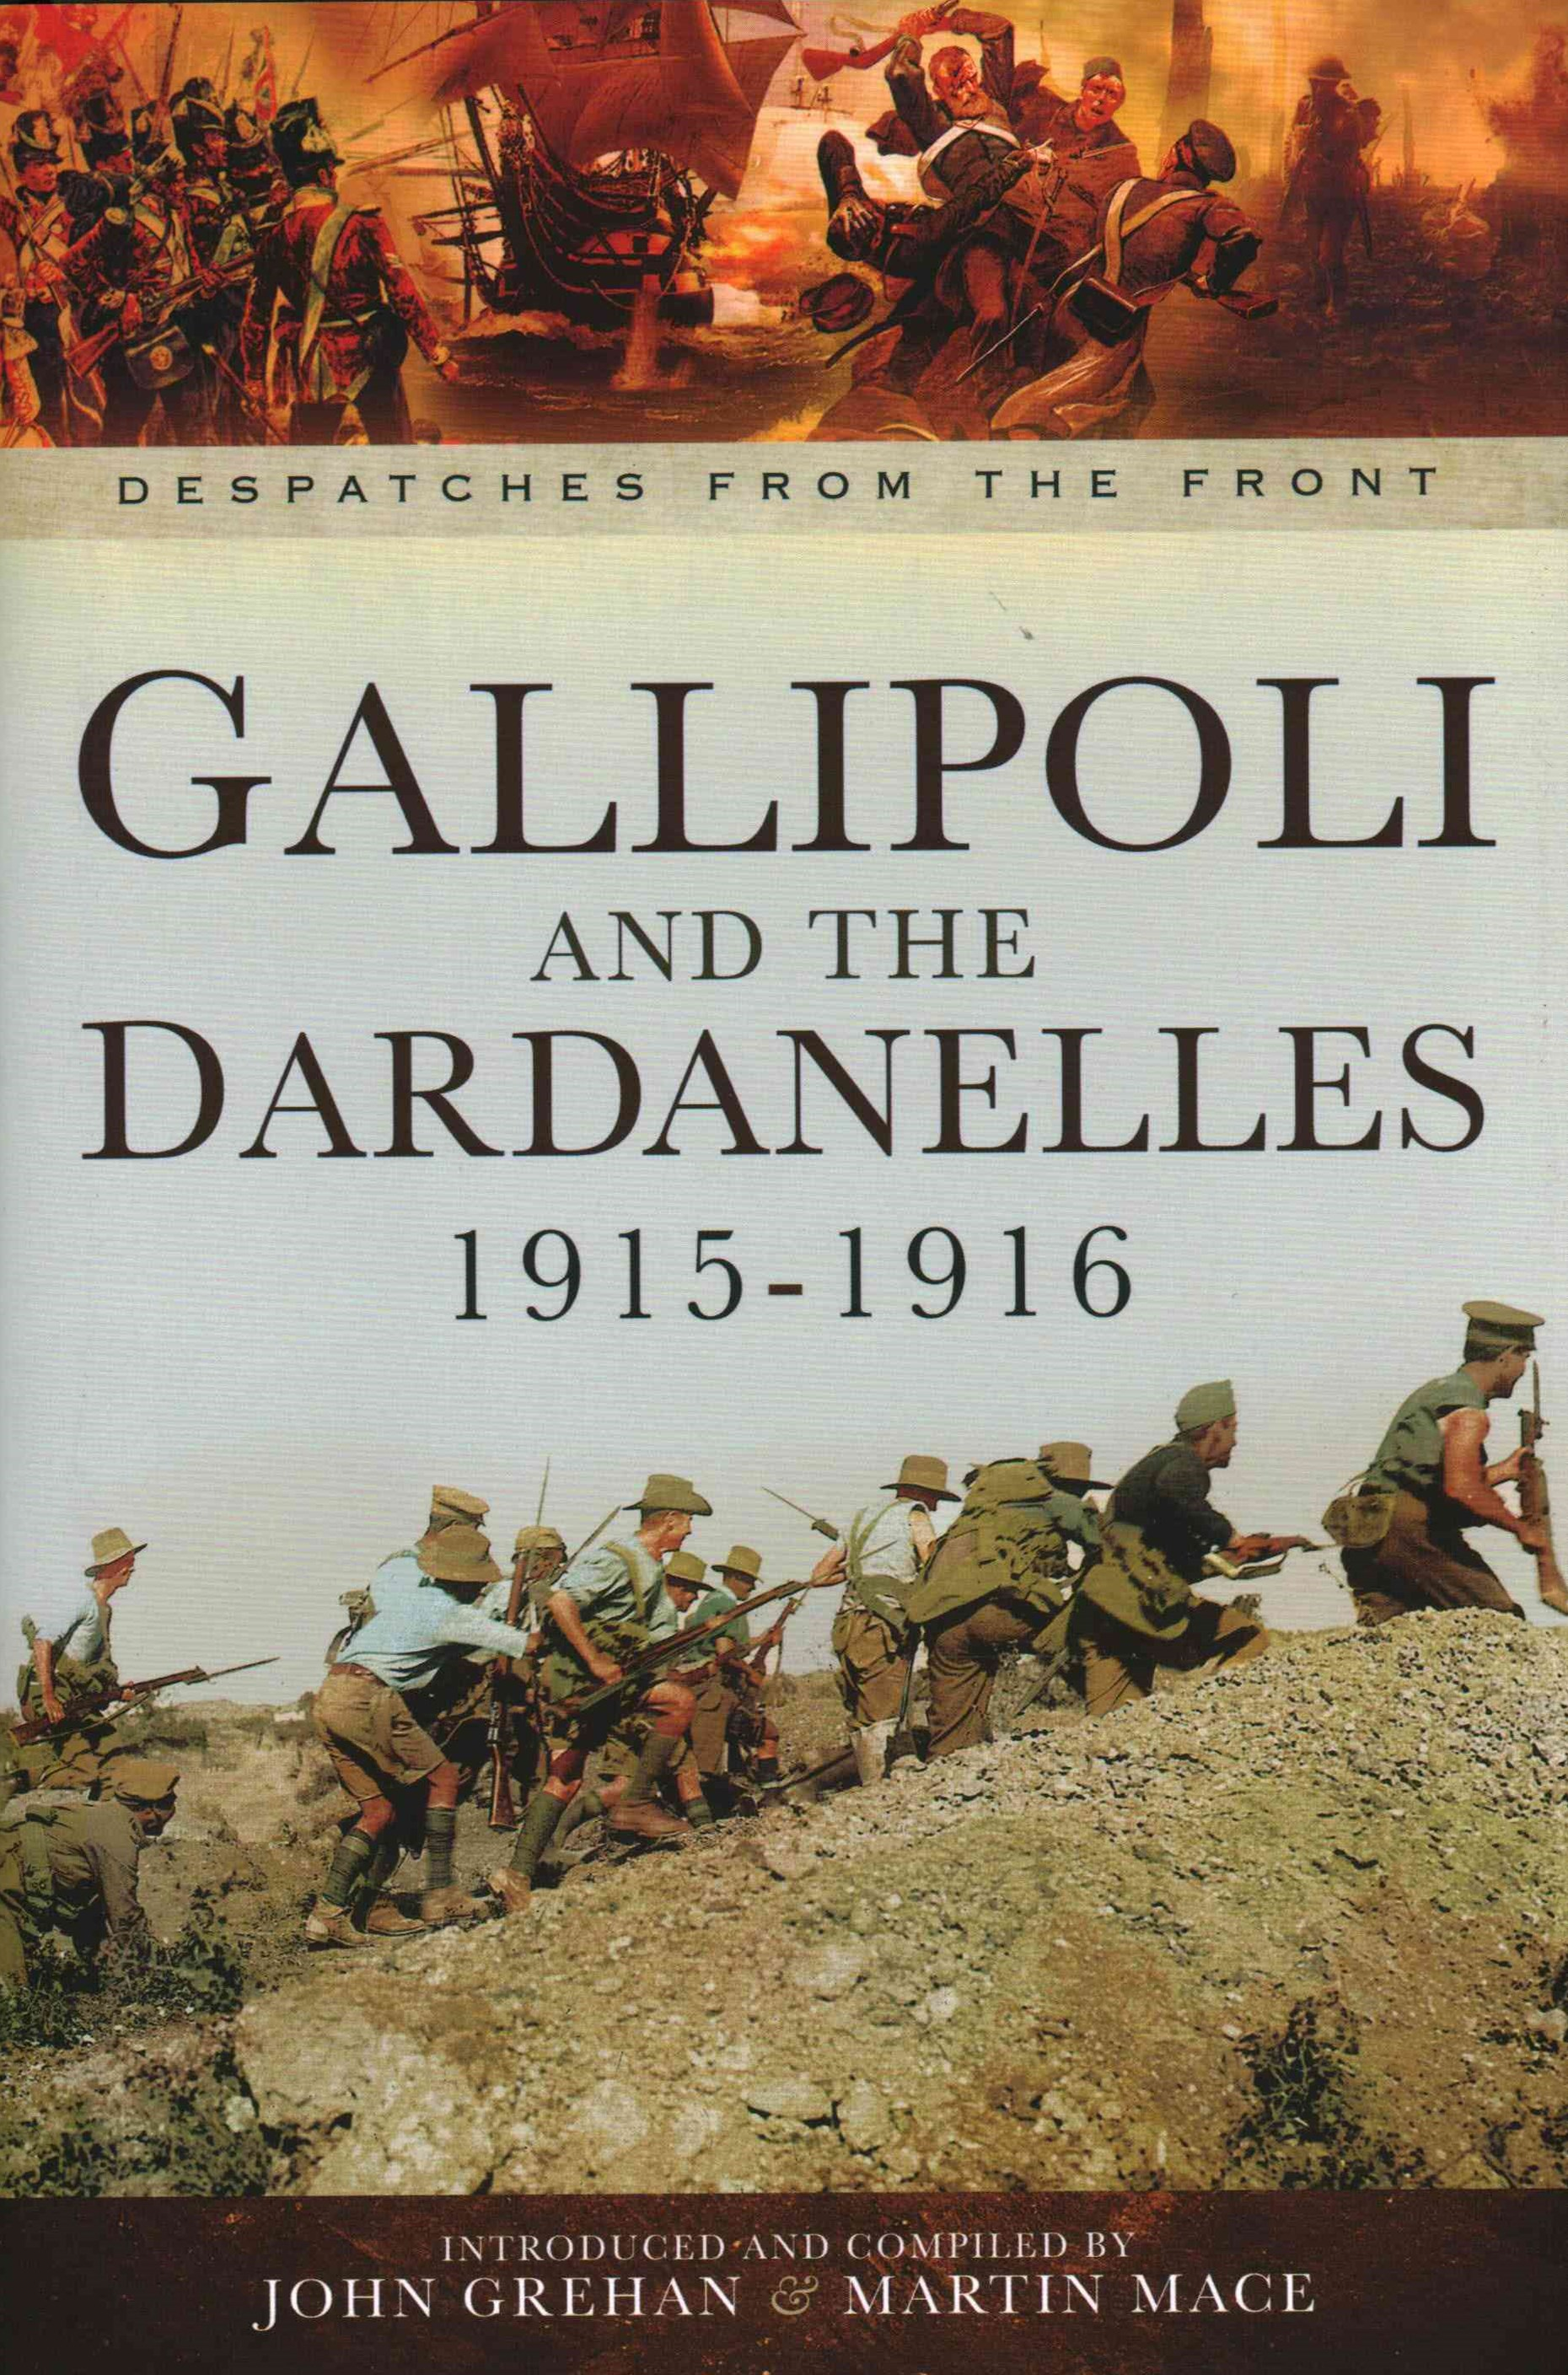 Gallipoli and the Dardanelles 1915-1916